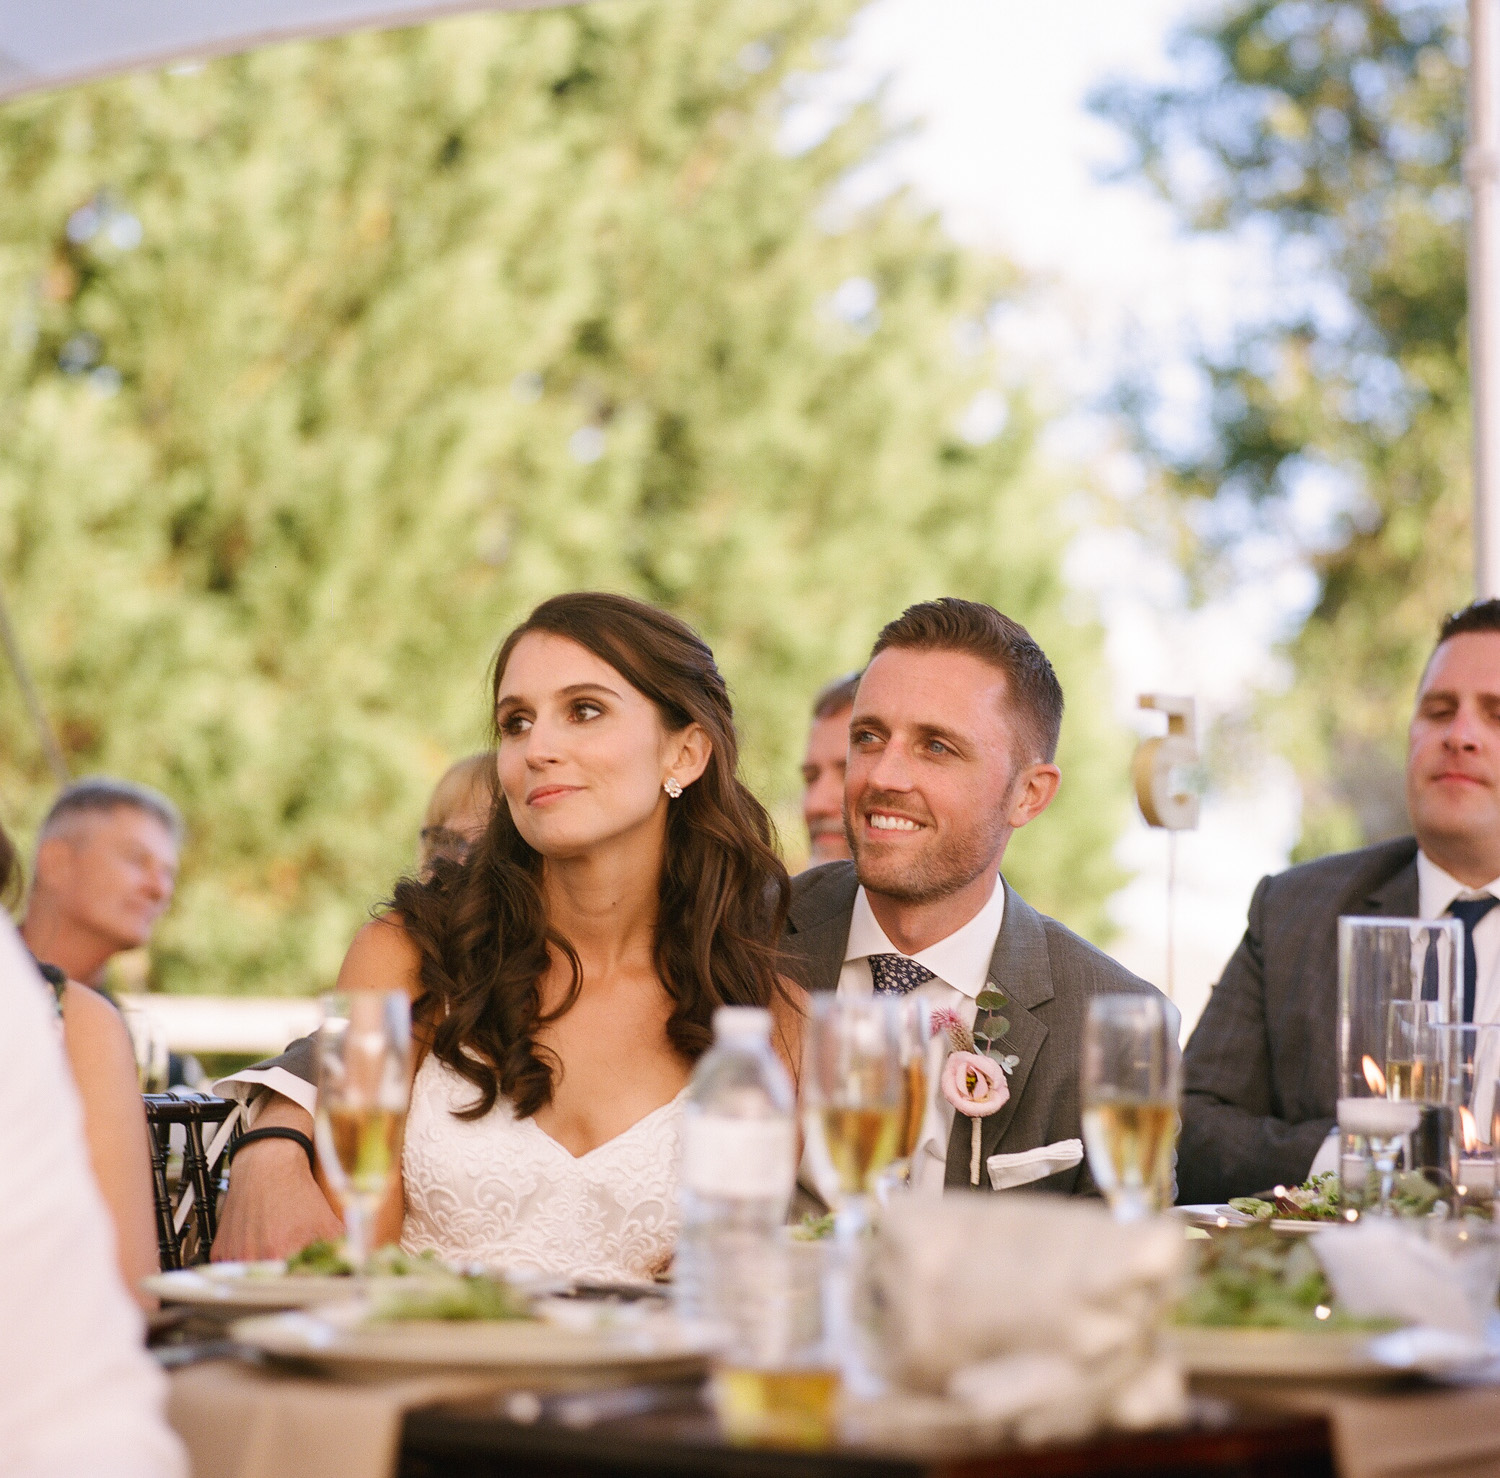 image of bride and groom during wedding reception toasts